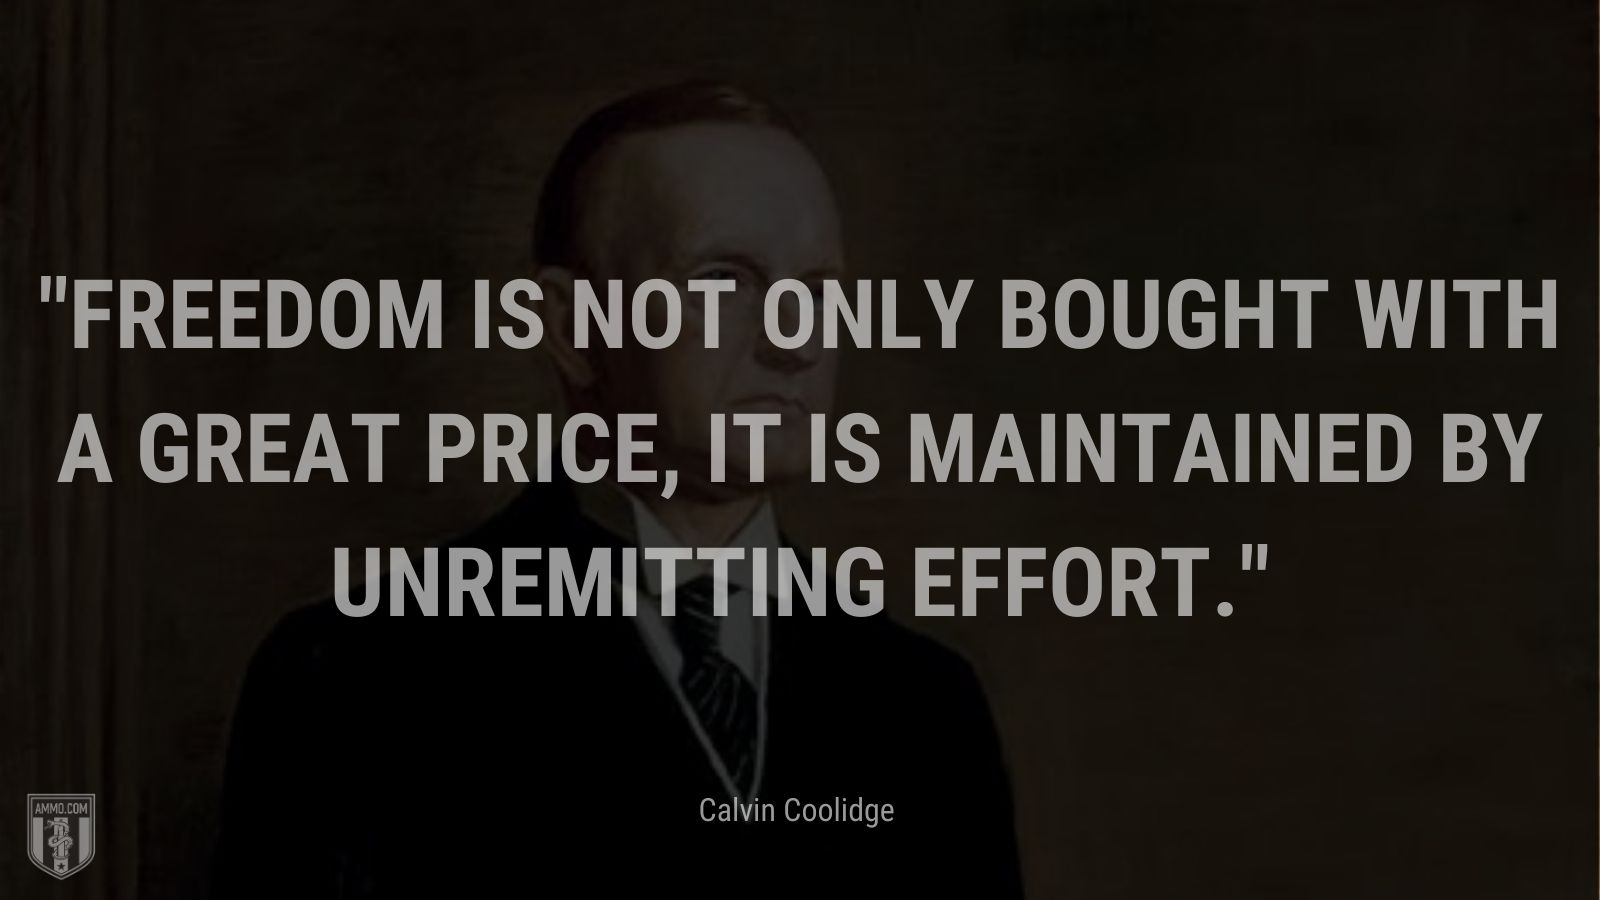 """""""Freedom is not only bought with a great price, it is maintained by unremitting effort."""" - Calvin Coolidge"""